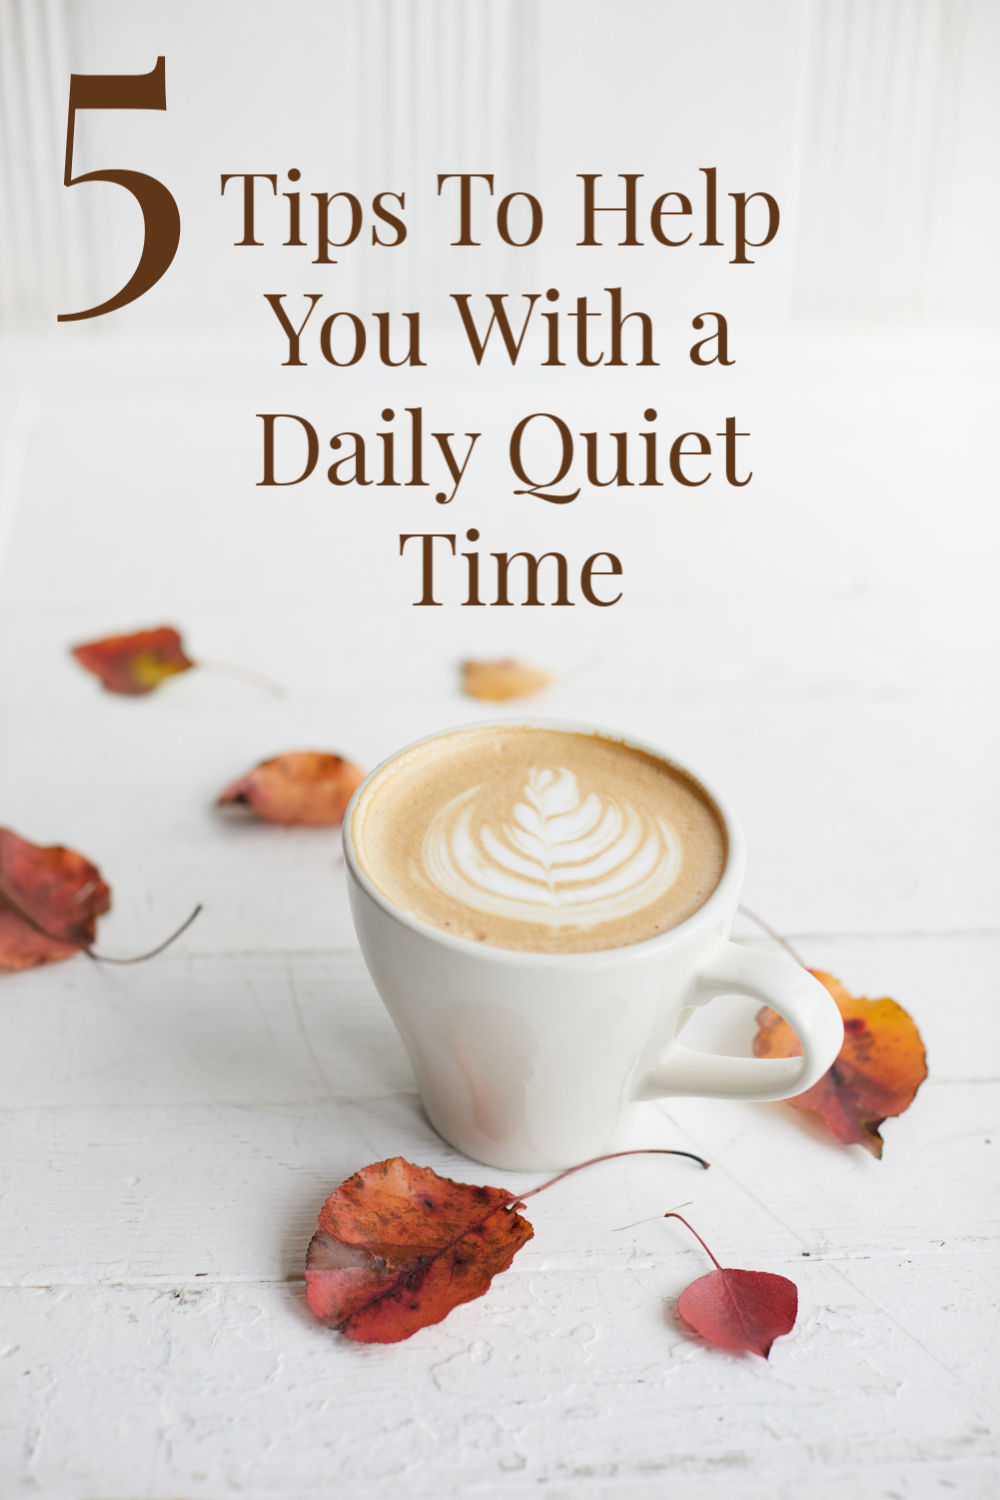 5 Tips To Help You With a Daily Quiet Time